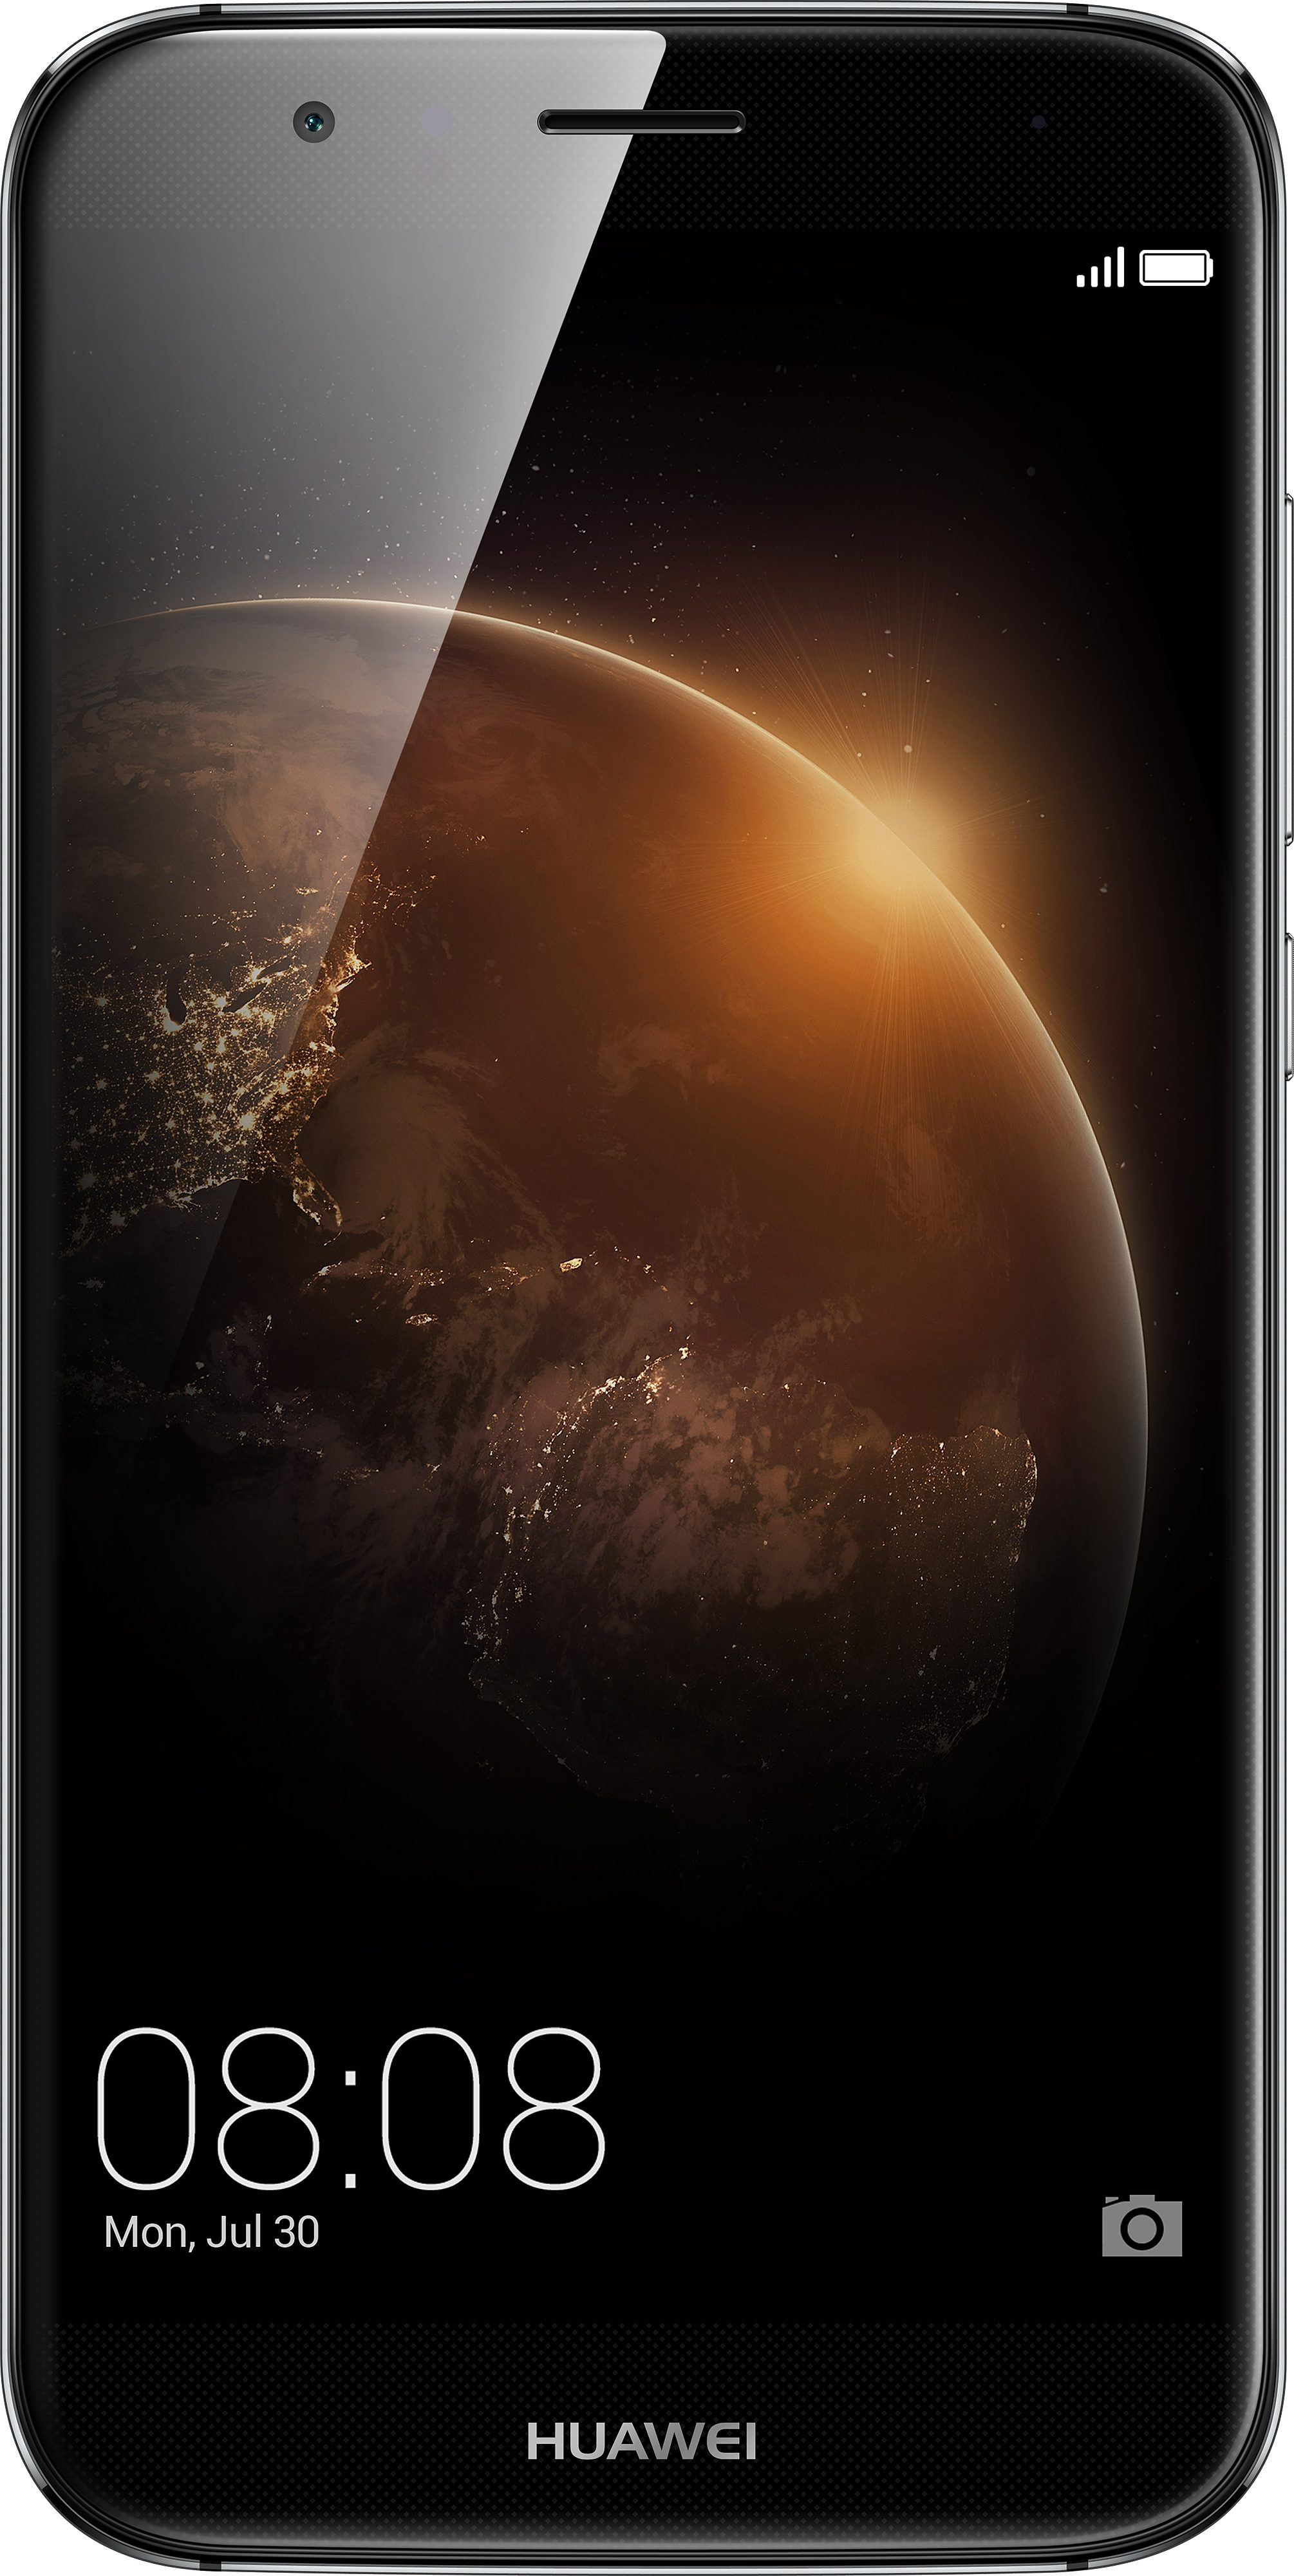 Huawei G8 Smartphone, 14 cm (5,5 Zoll) Display, LTE (4G), Android™ Lollipop 5.1.1, 13,0 Megapixel